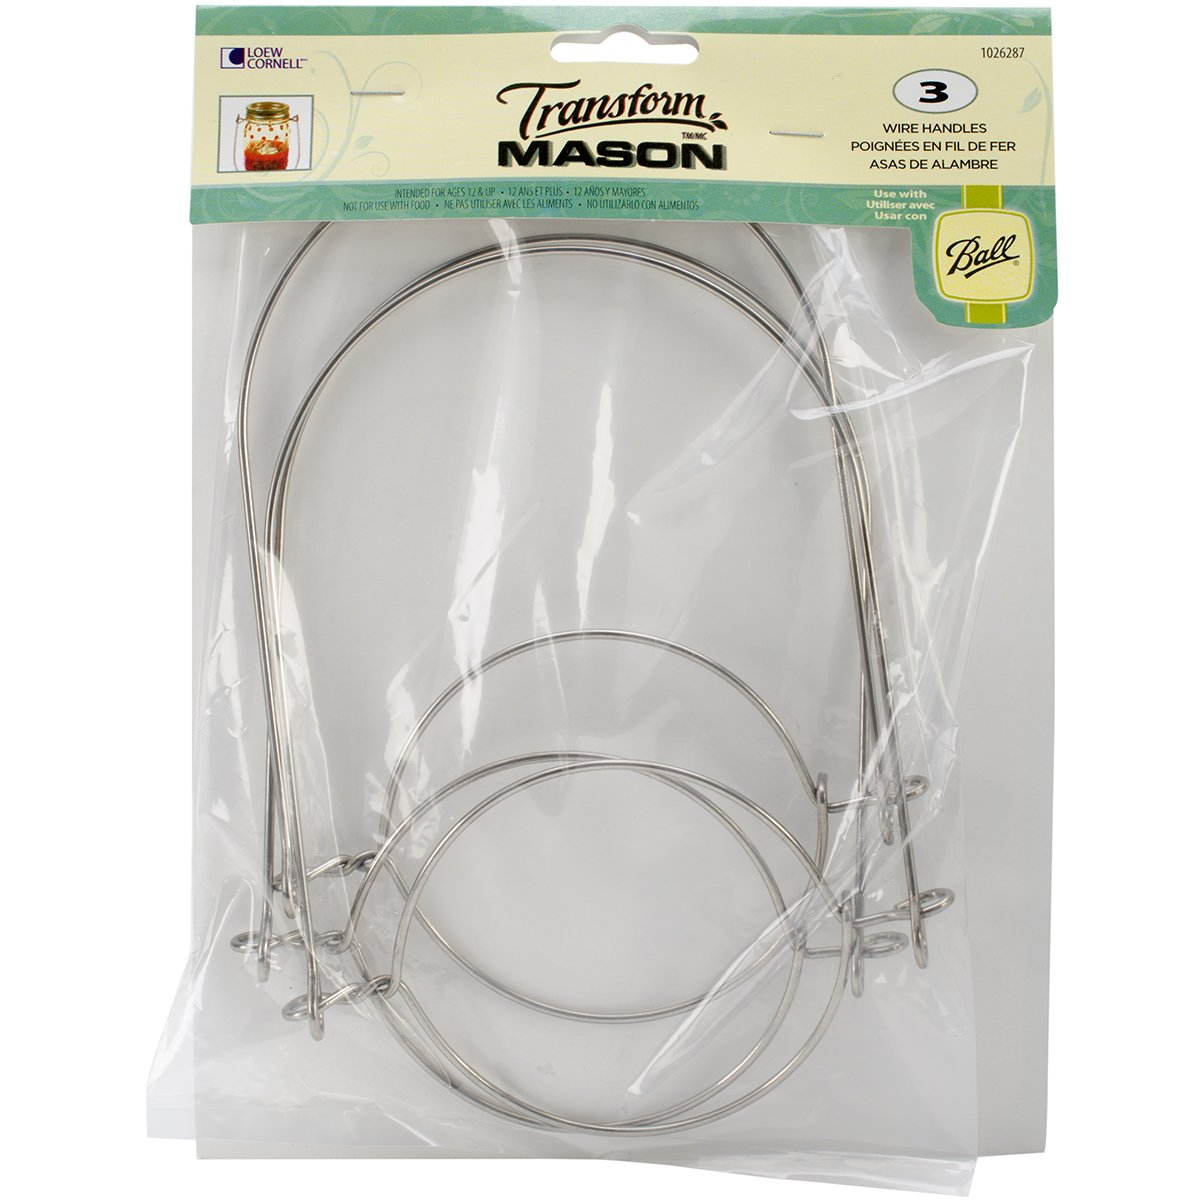 Amazon.com: Loew-Cornell Mason Ball Jar Wire Handles (Handle-Ease ...